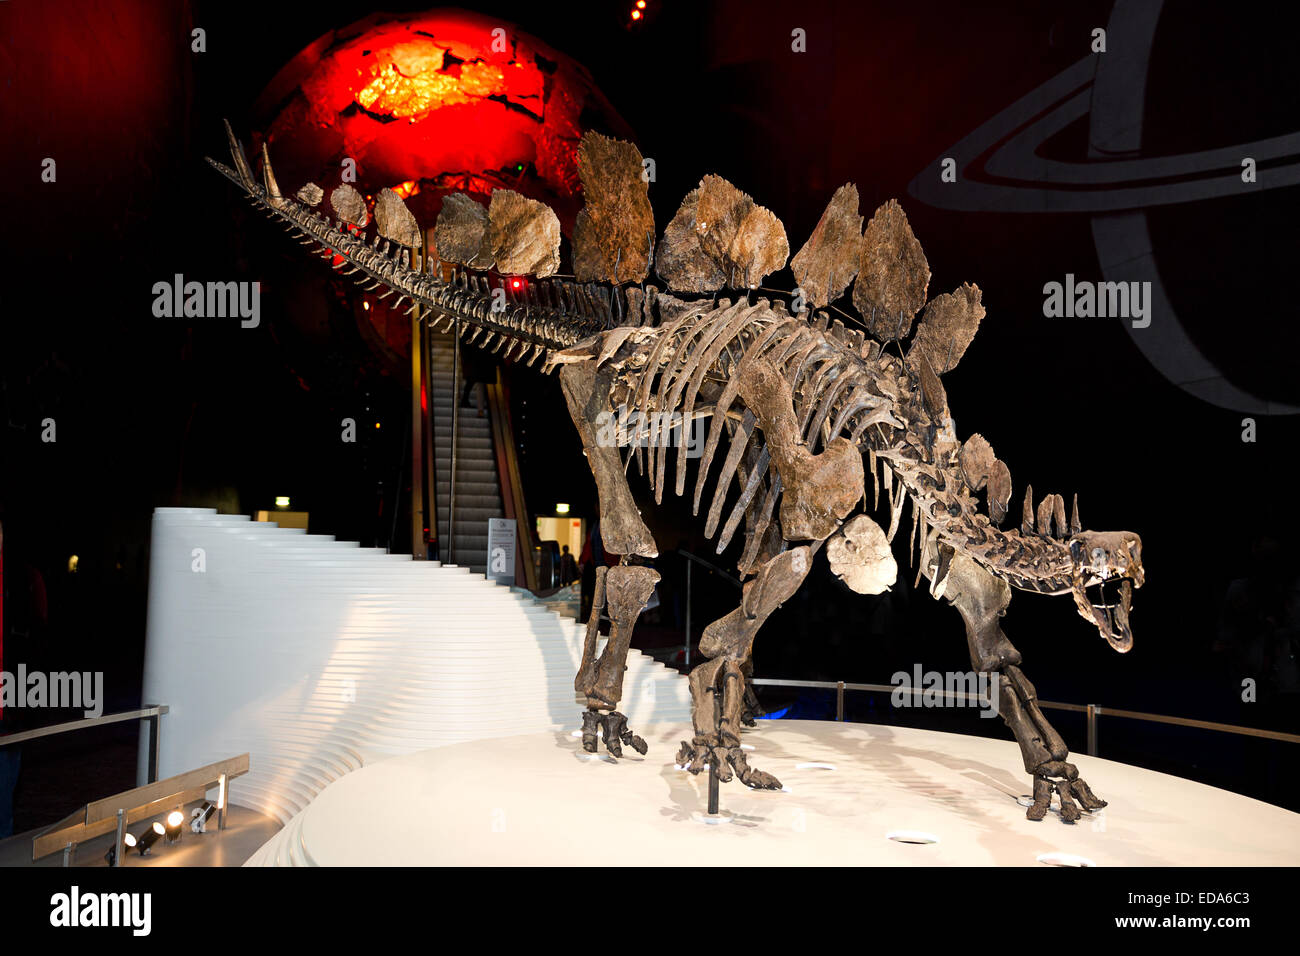 Sophie the Stegosaurus at the Natural History Museum in London. - Stock Image